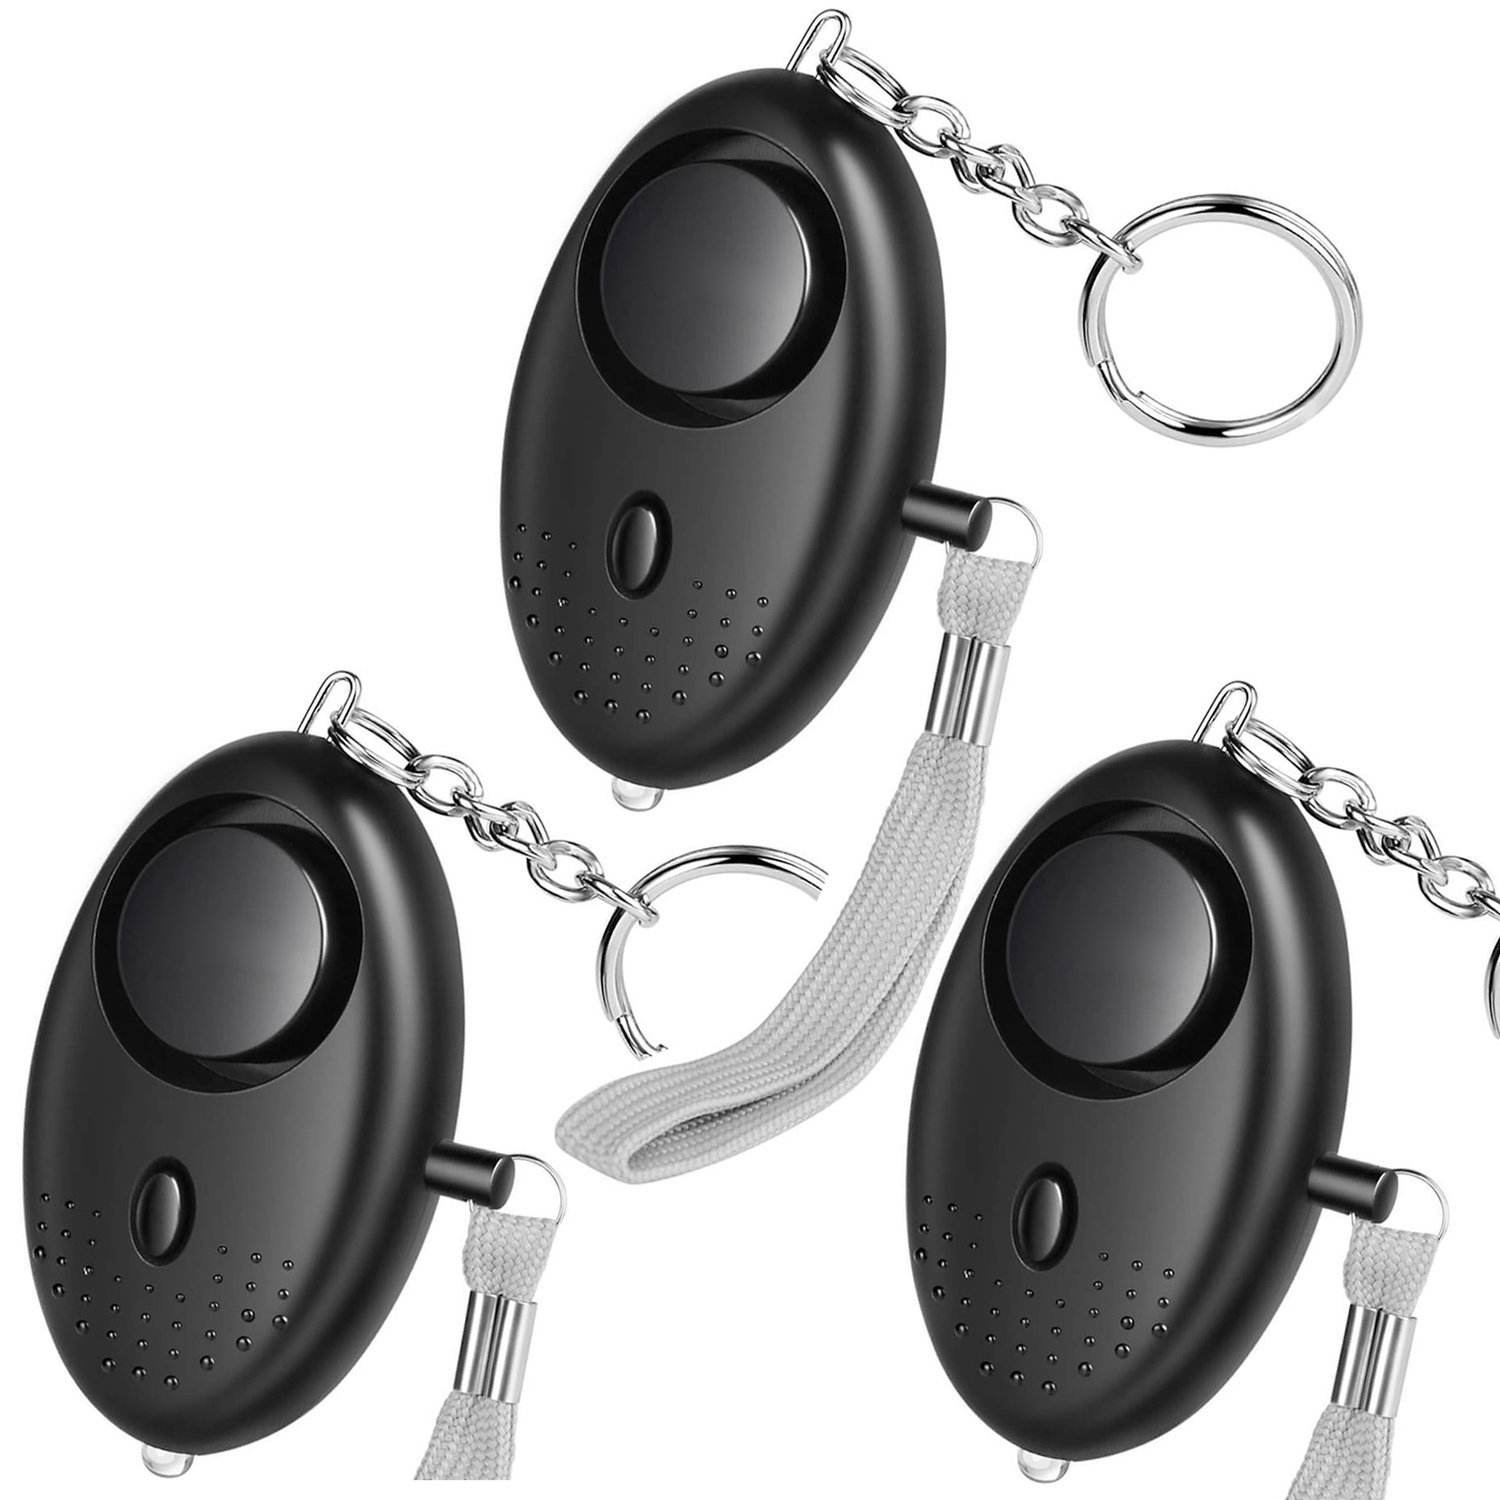 Factory Wholesale Amazon Best Selling 130db Buzzer Personal Emergency Alarm Keychain Alarms for Elder ladies children